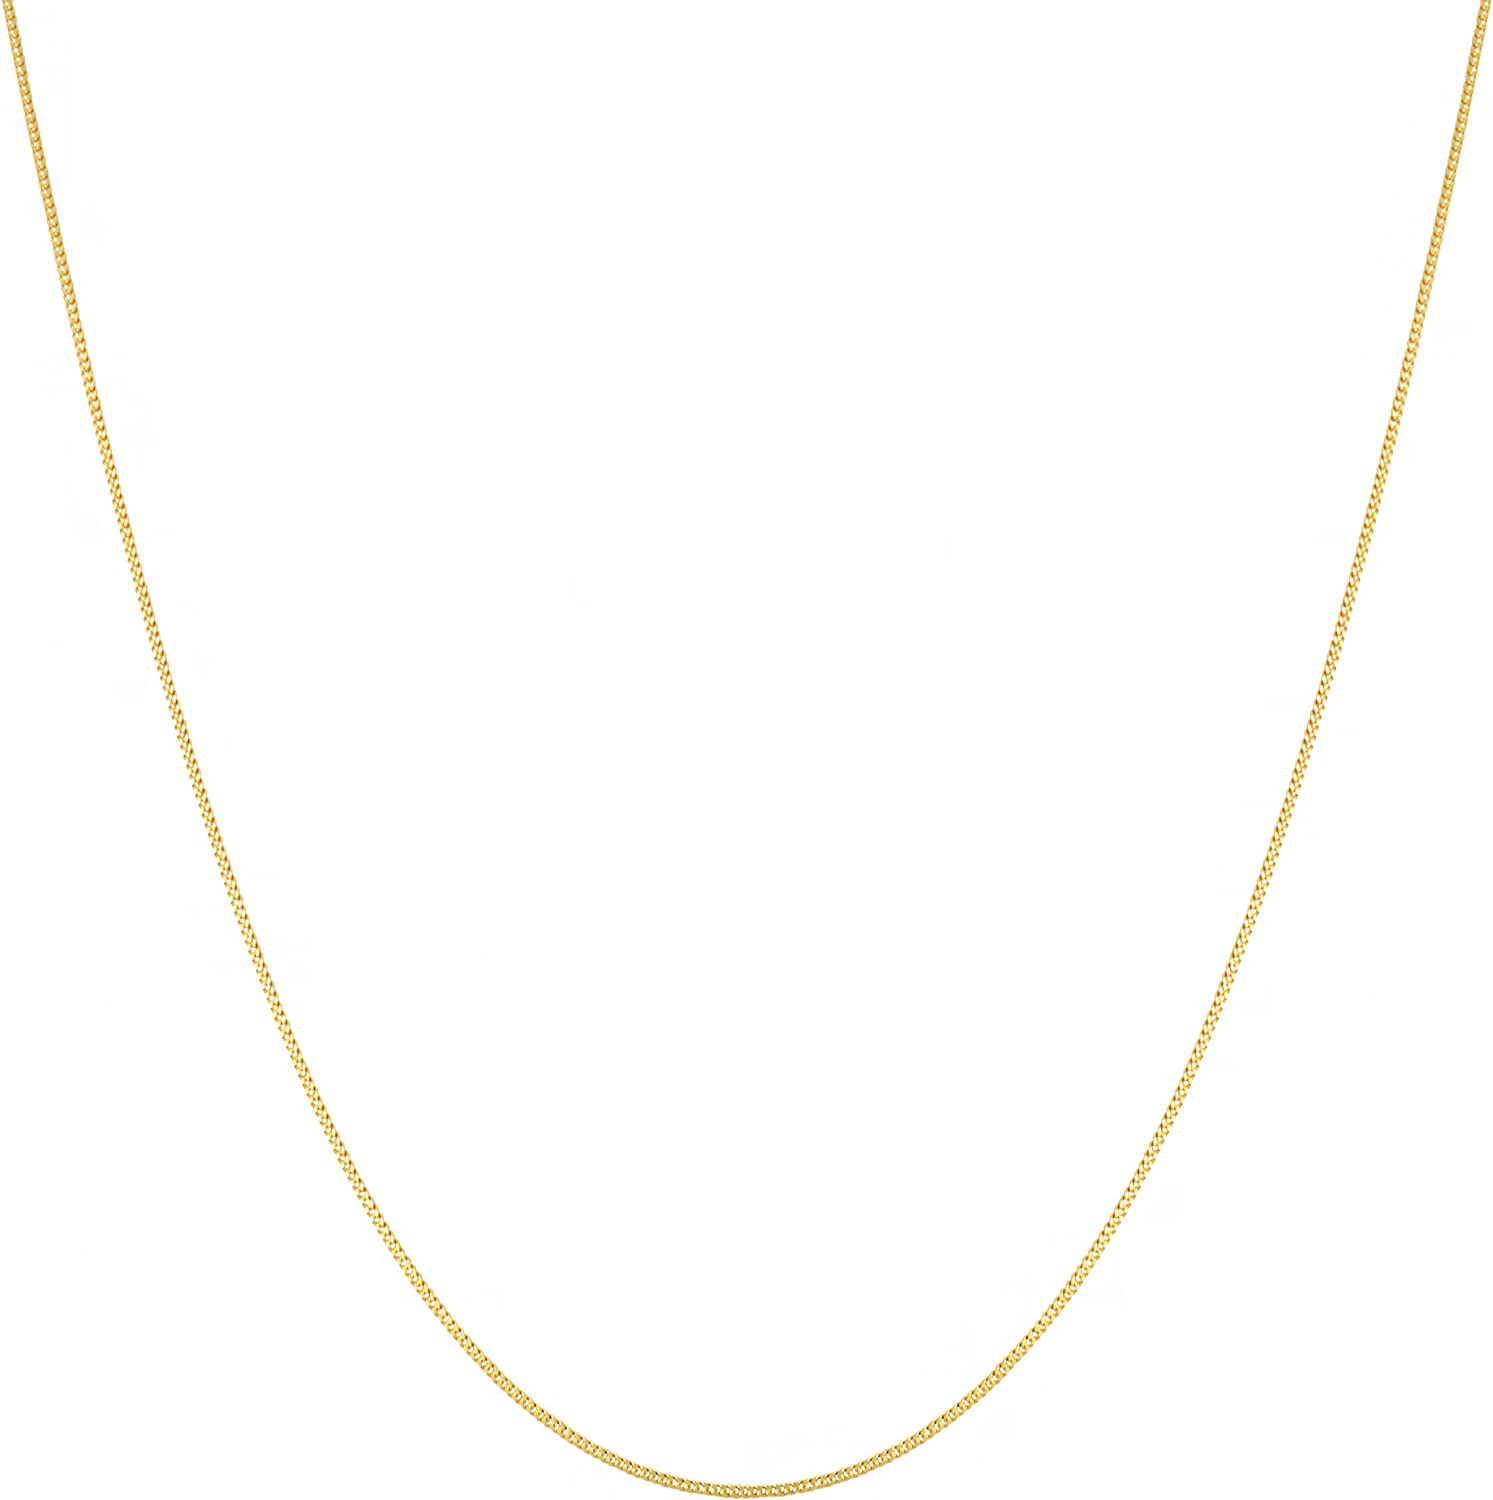 Kooljewelry 14k Yellow Gold 0.7 mm Thin Curb Link Chain Necklace (14, 16, 18, 20, 22, 24 or 30 inch)